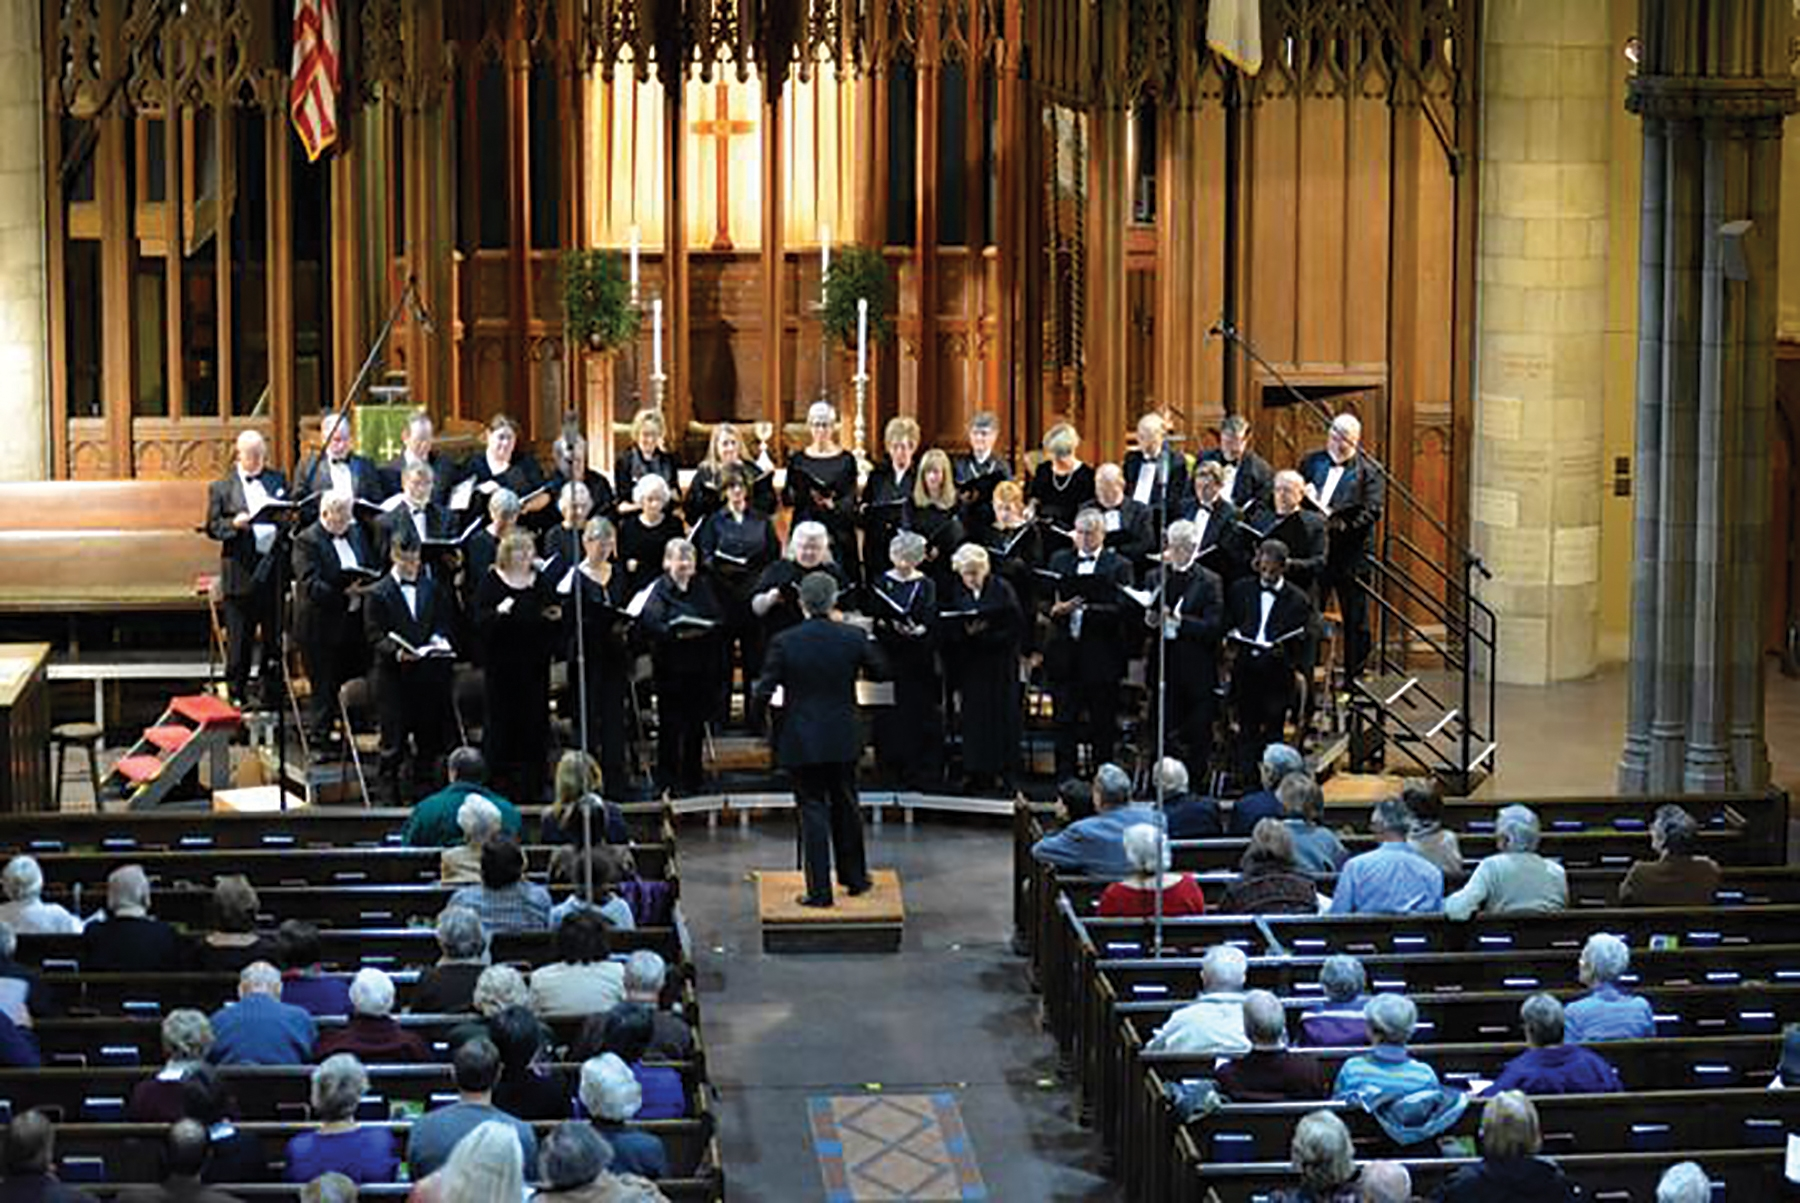 5a23735c3ca36501bb5d_Photo_1_-_Allen_Artz_creates_music_with_the_Crescent_Choral_Society_in_beautiful_Crescent_Ave_Church.jpg